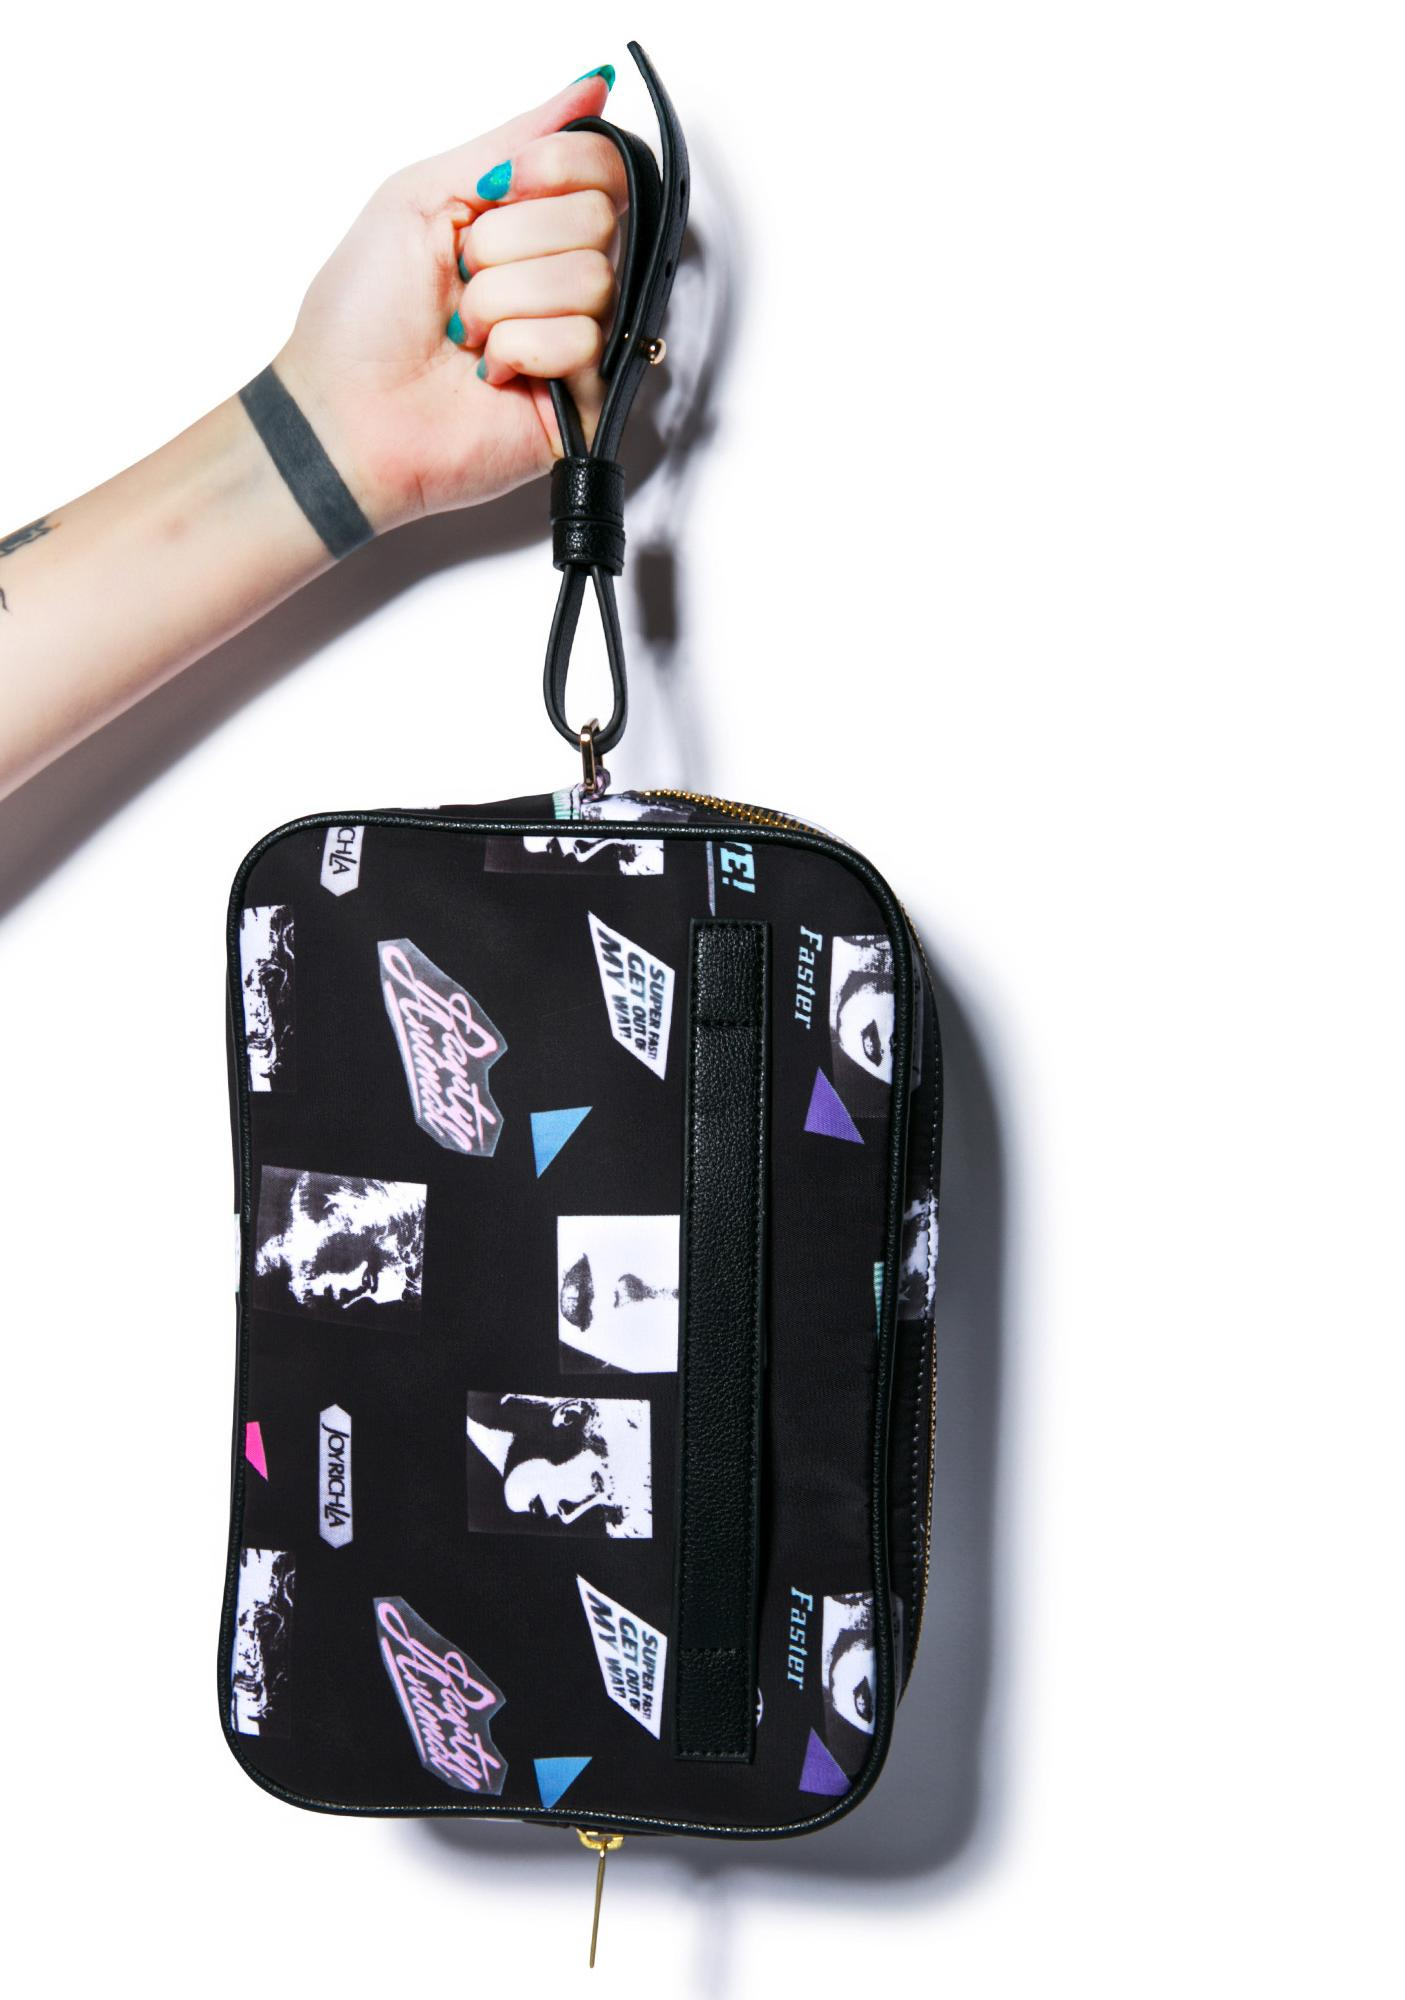 Joyrich Editorial Map Wrist Bag